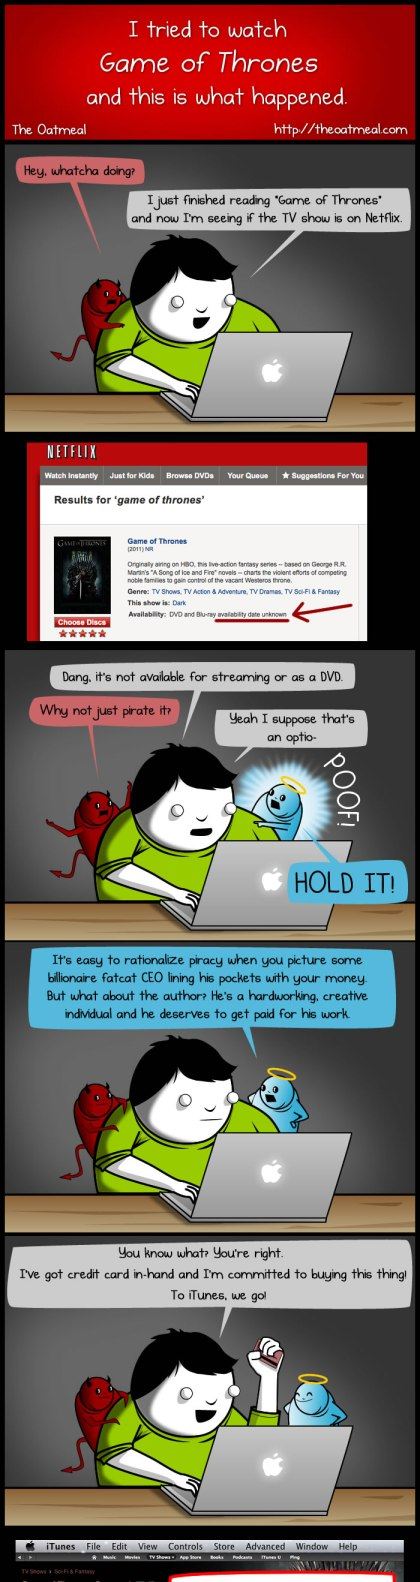 I tried to watch Game of Thrones and this is what happened - The Oatmeal